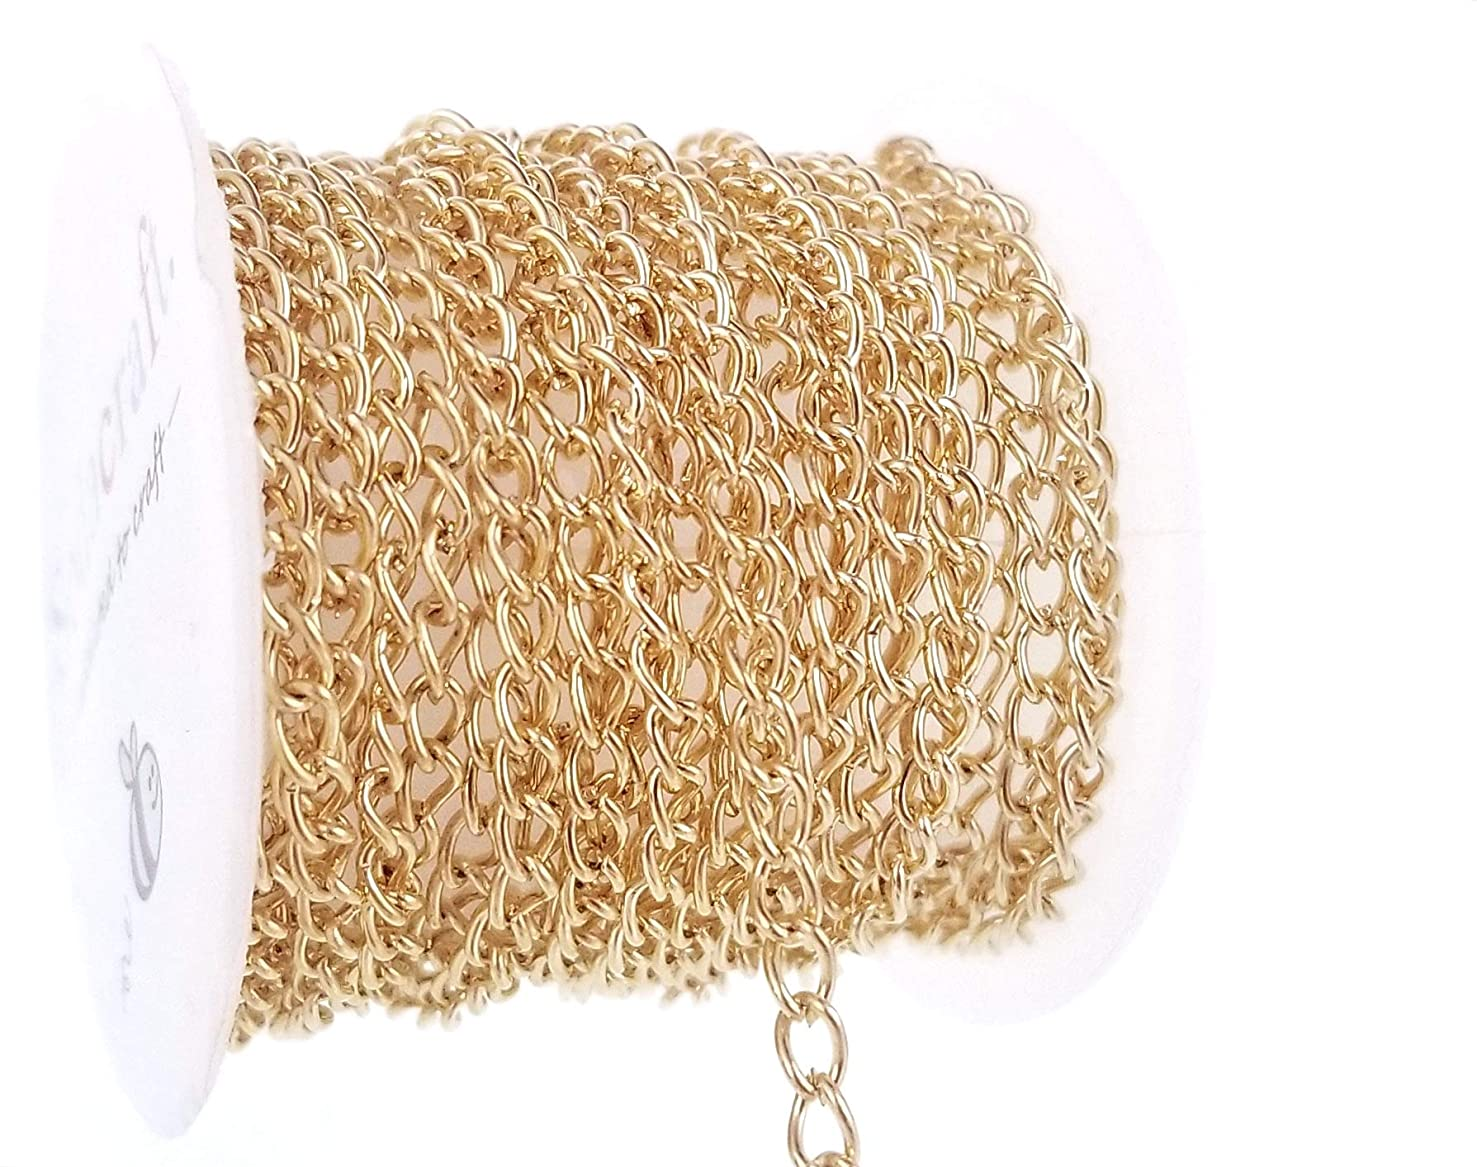 Light Gold Curb Link Chain Spool for Jewelry Making, Crafts (3 x 4.5mm) 3mm